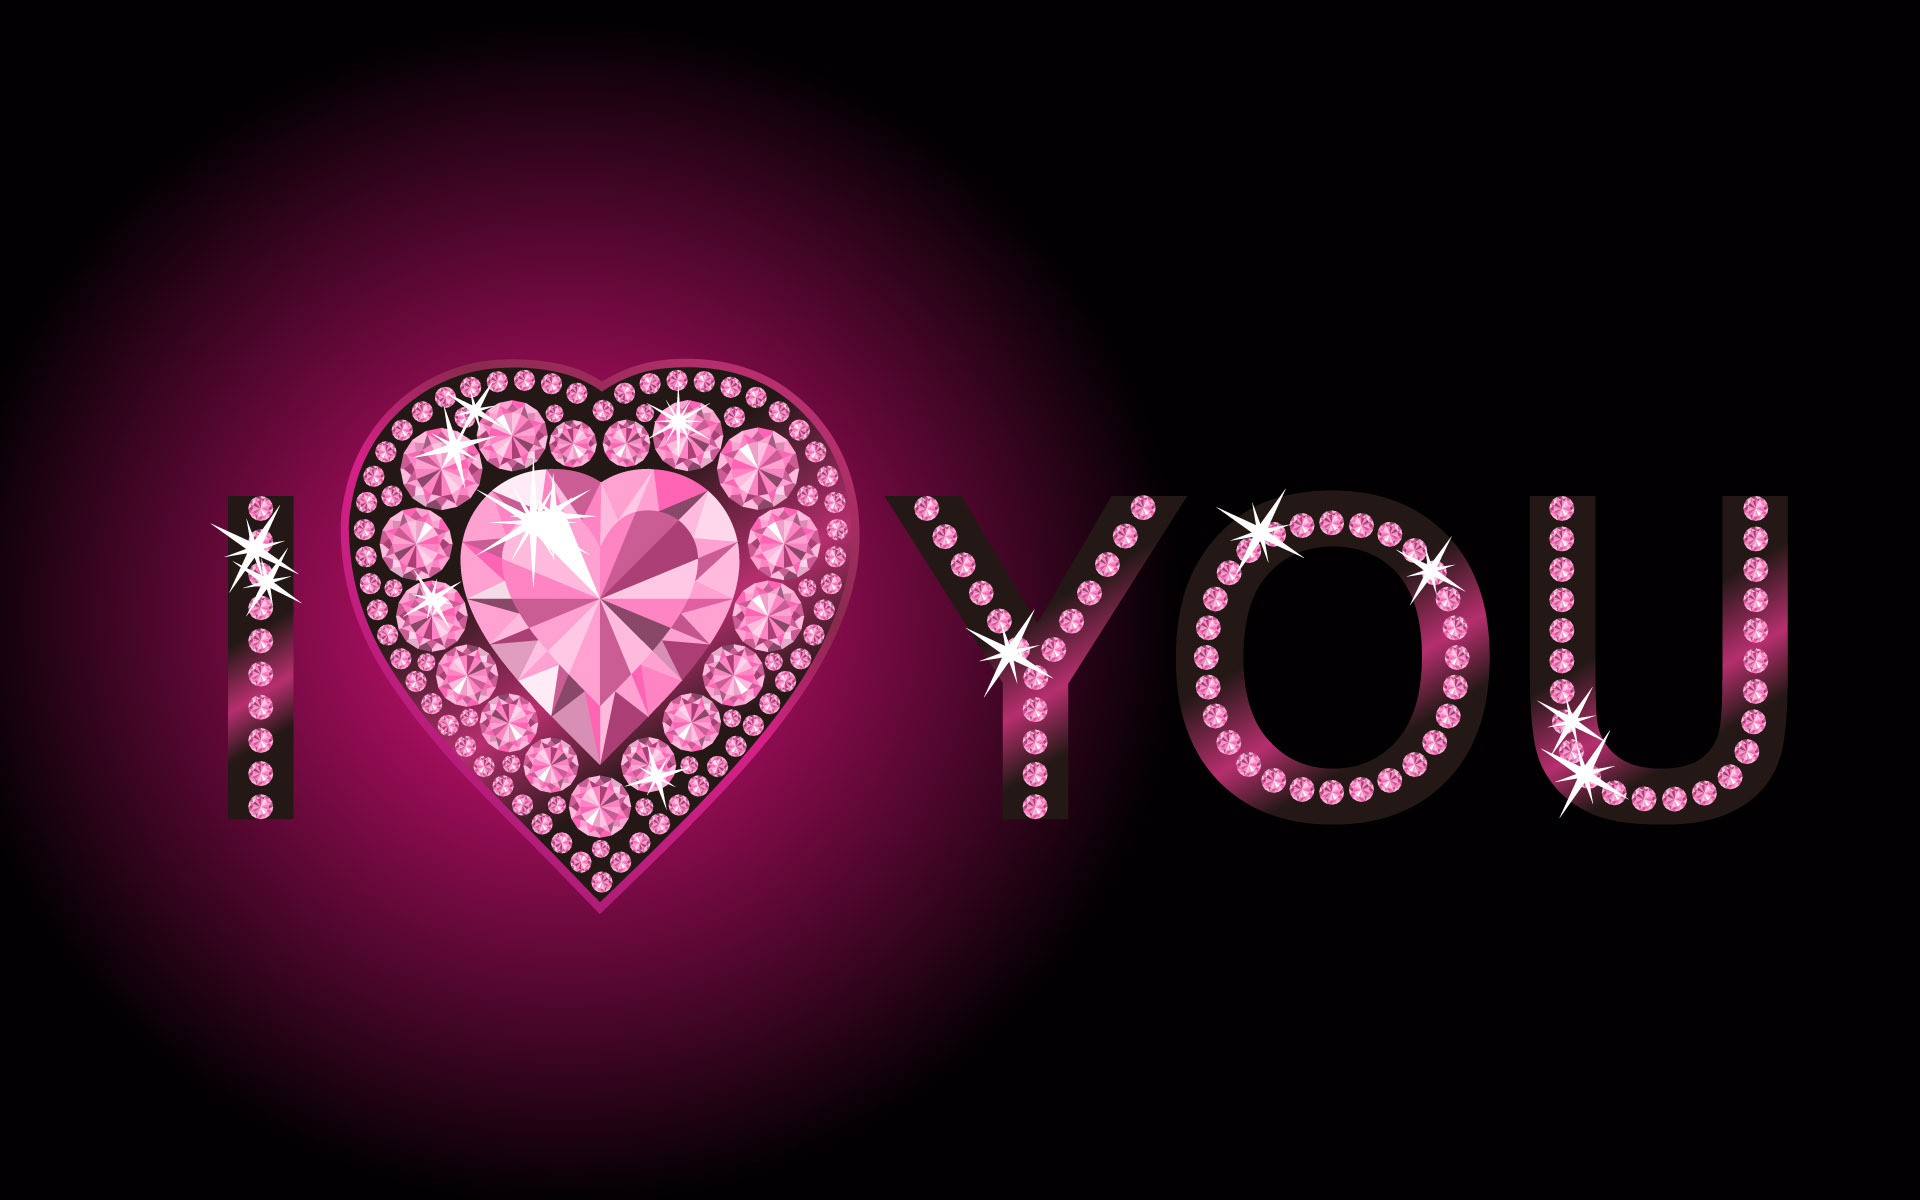 Love Wallpapers New 2014 : I Love You Desktop Wallpaper - Wallpaper, High Definition ...